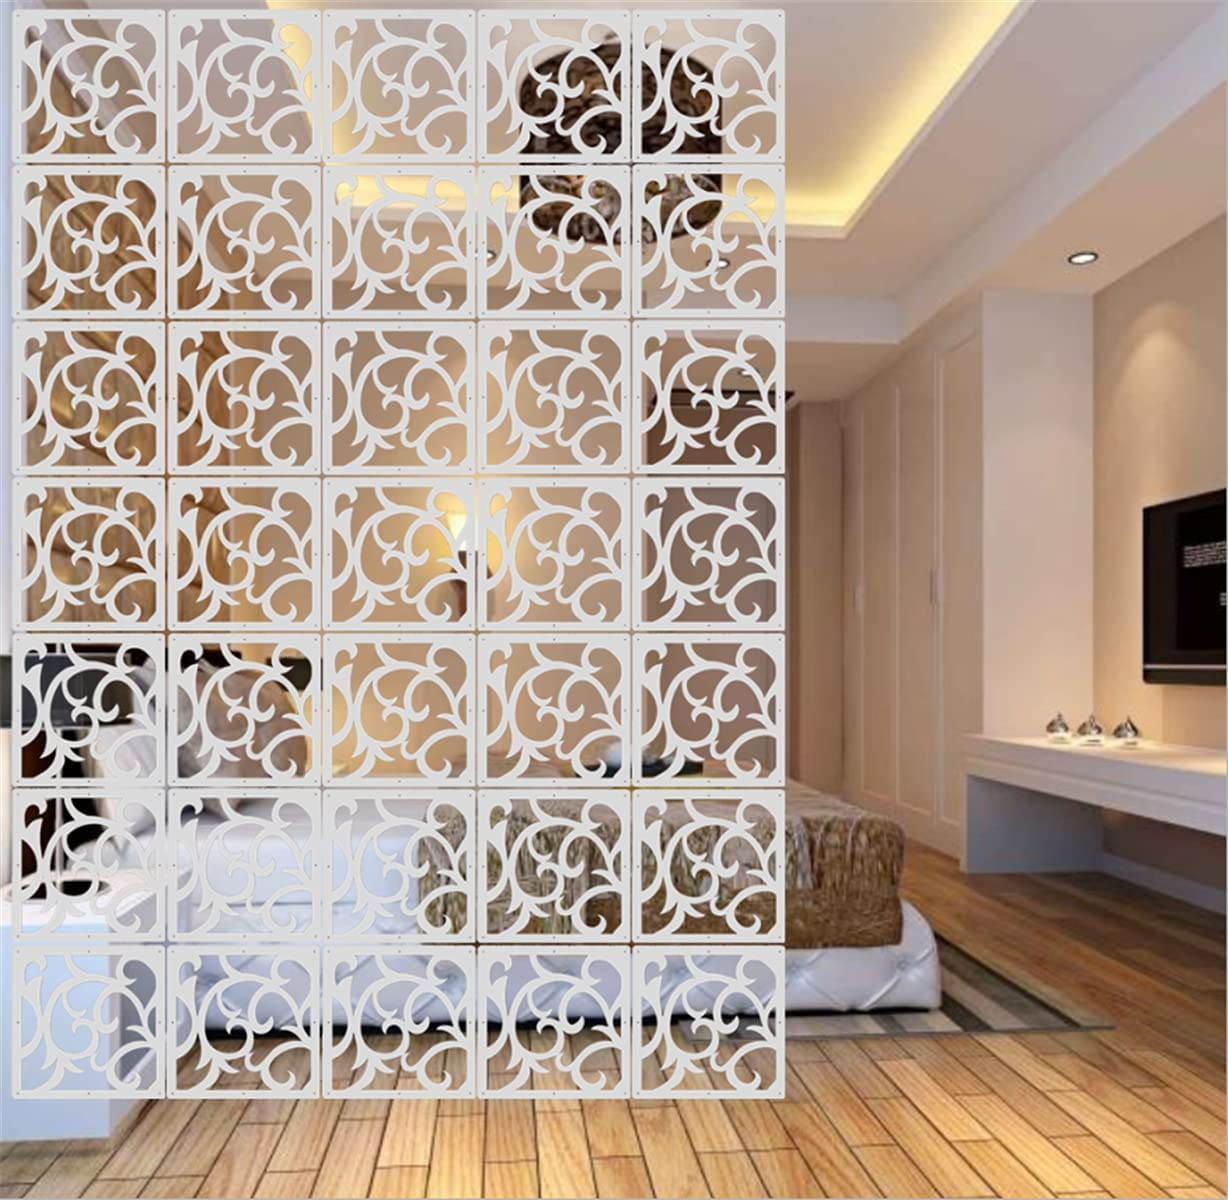 BMIDRUT 12Pcs White Hanging Divider Baltimore Mall Divid Room Limited time for free shipping Wood-Plastic